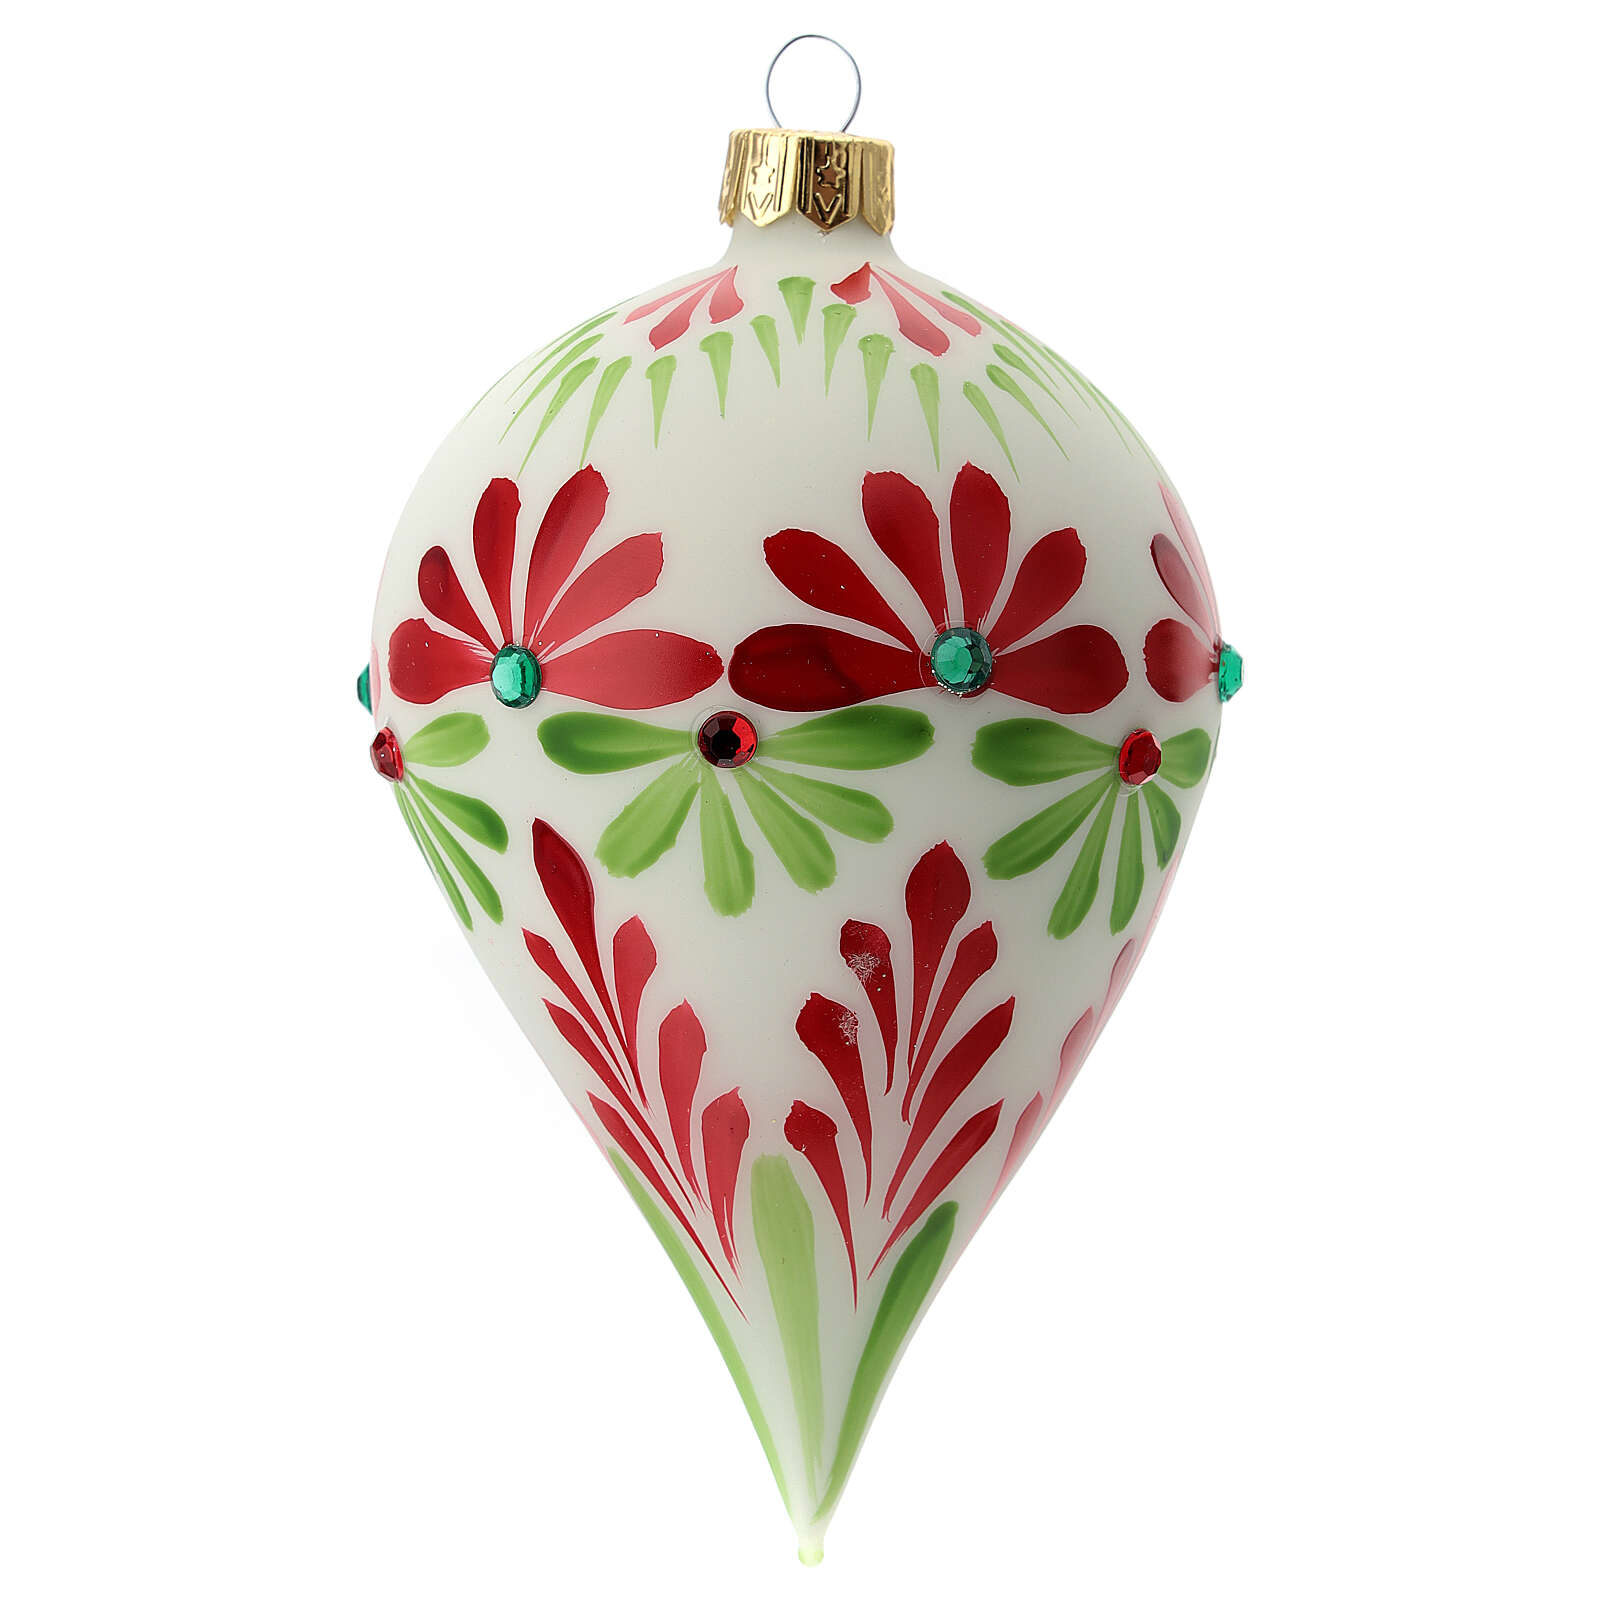 Raindrop Christmas ornament stylized flowers blown glass 4